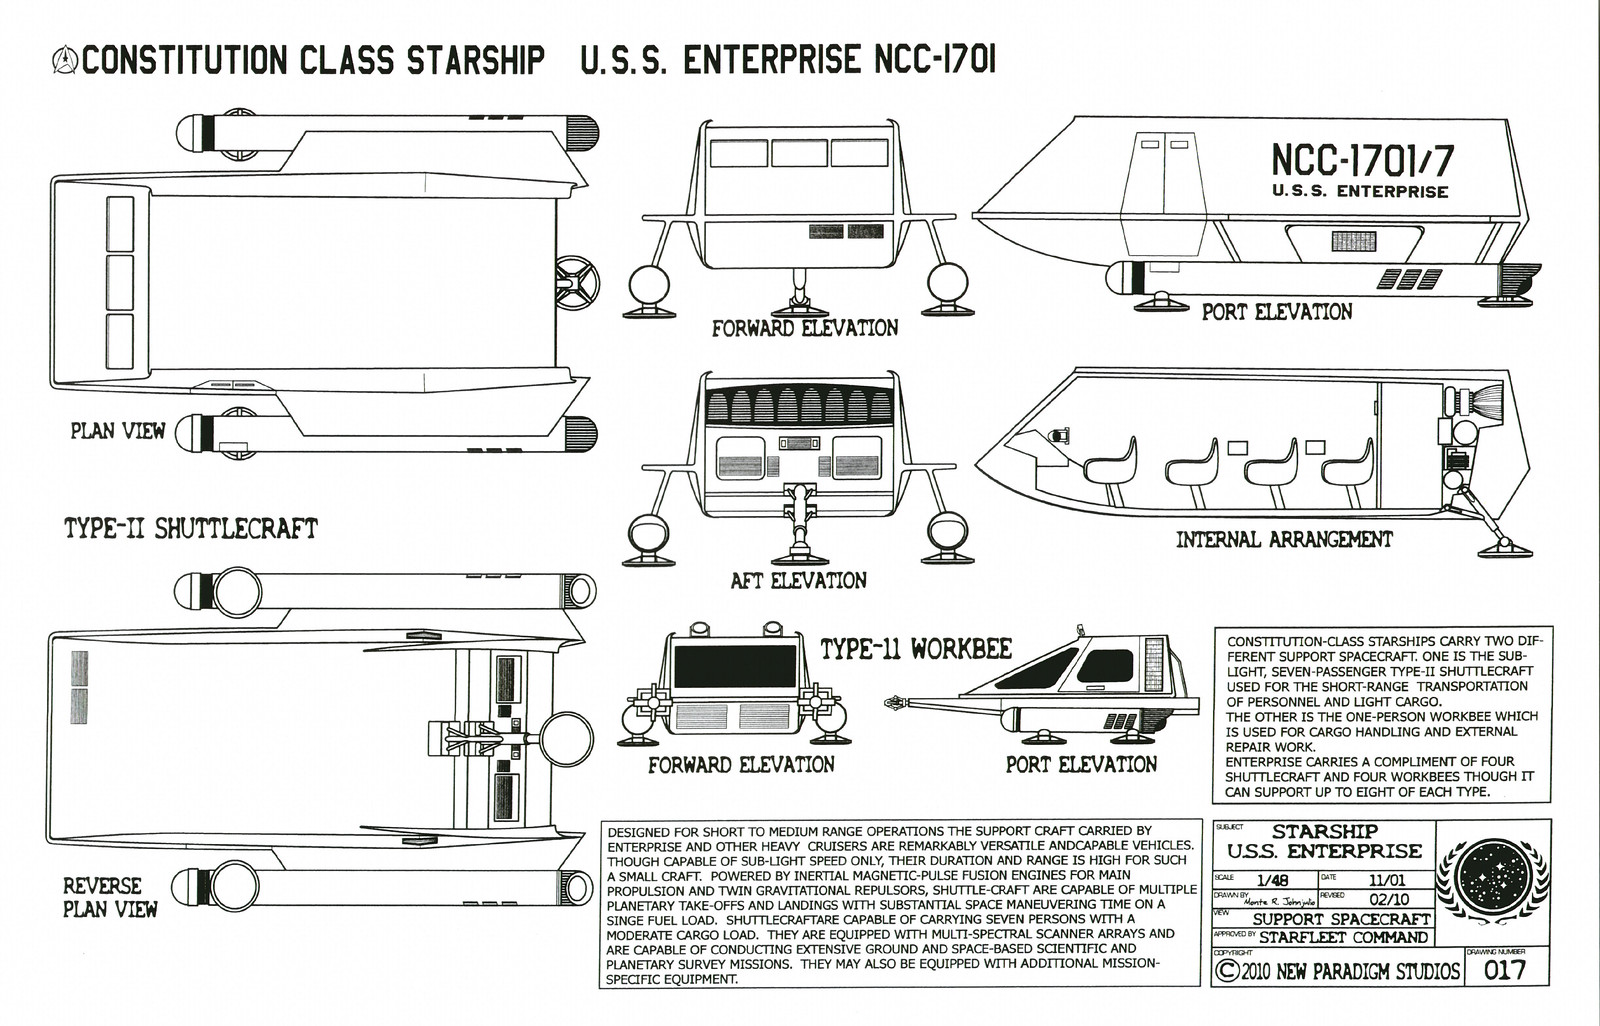 David Kimbleu0027s 1980 Blueprints Of The Refitted Enterprise From Star Trek:  The Motion Picture. He Also Did The Iconic Cutaway Picture Of The  Enterprise A, ...